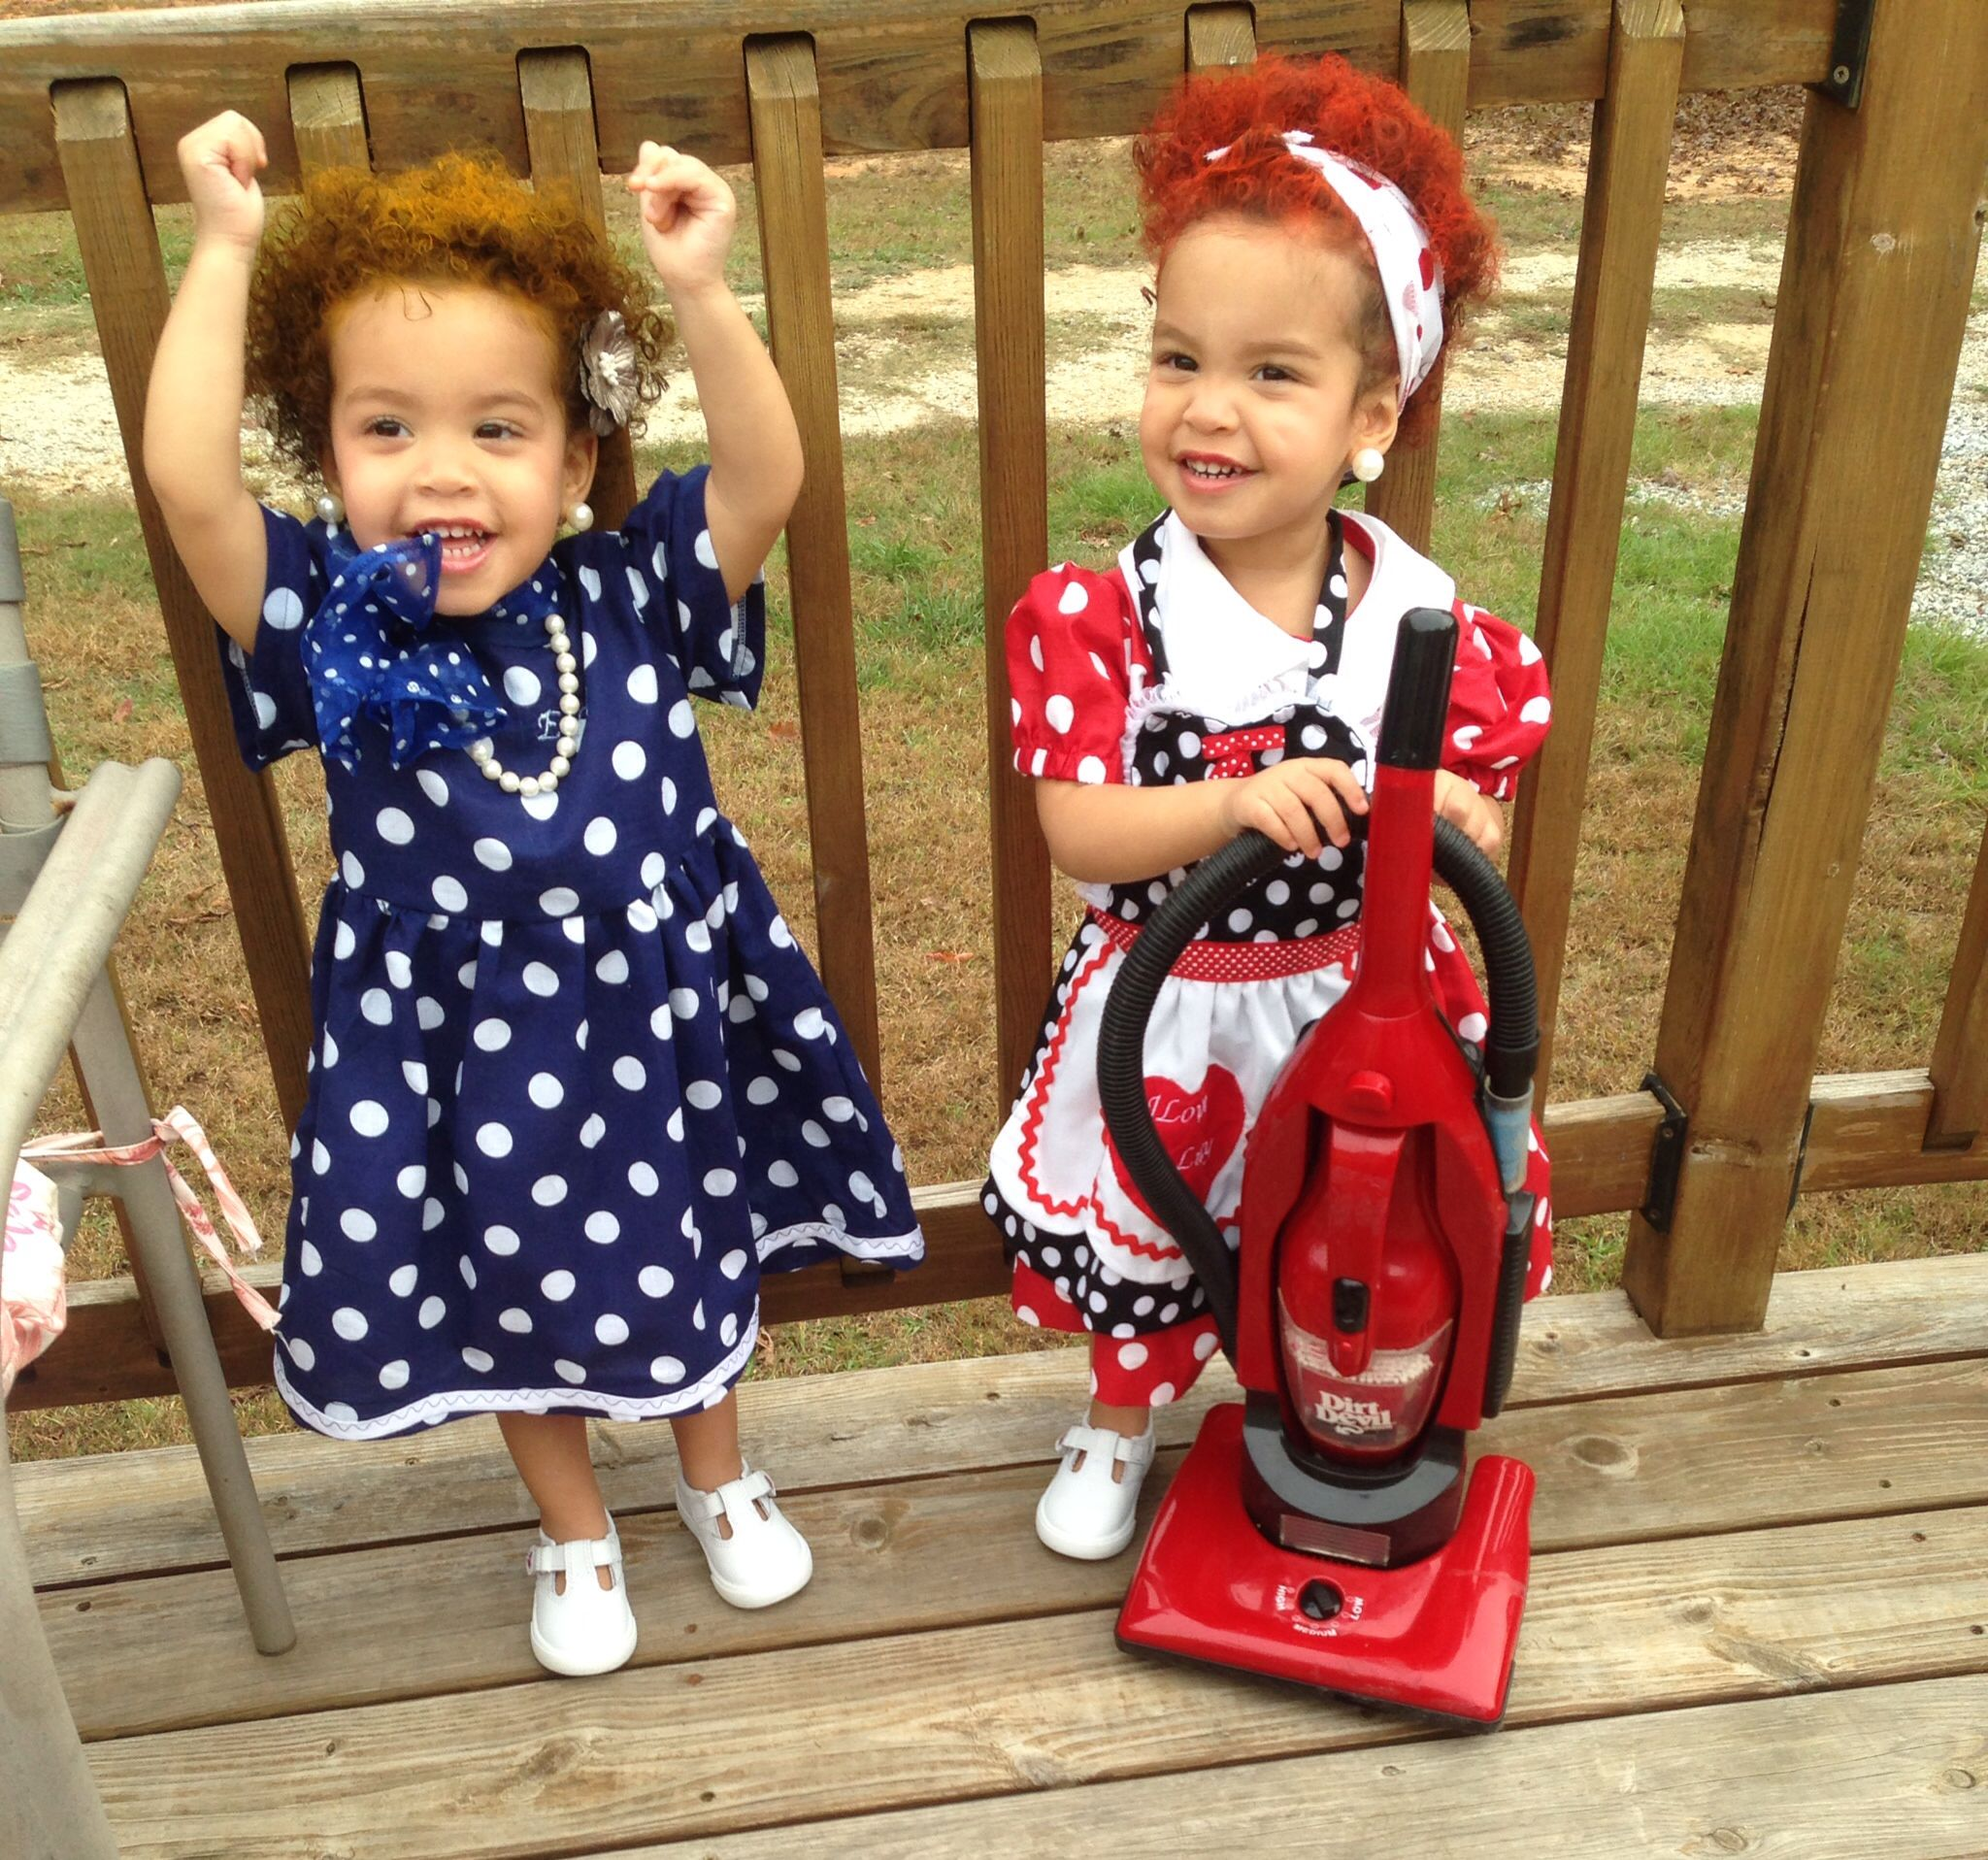 I love lucy and Ethel costume | My twin girls | Pinterest ...